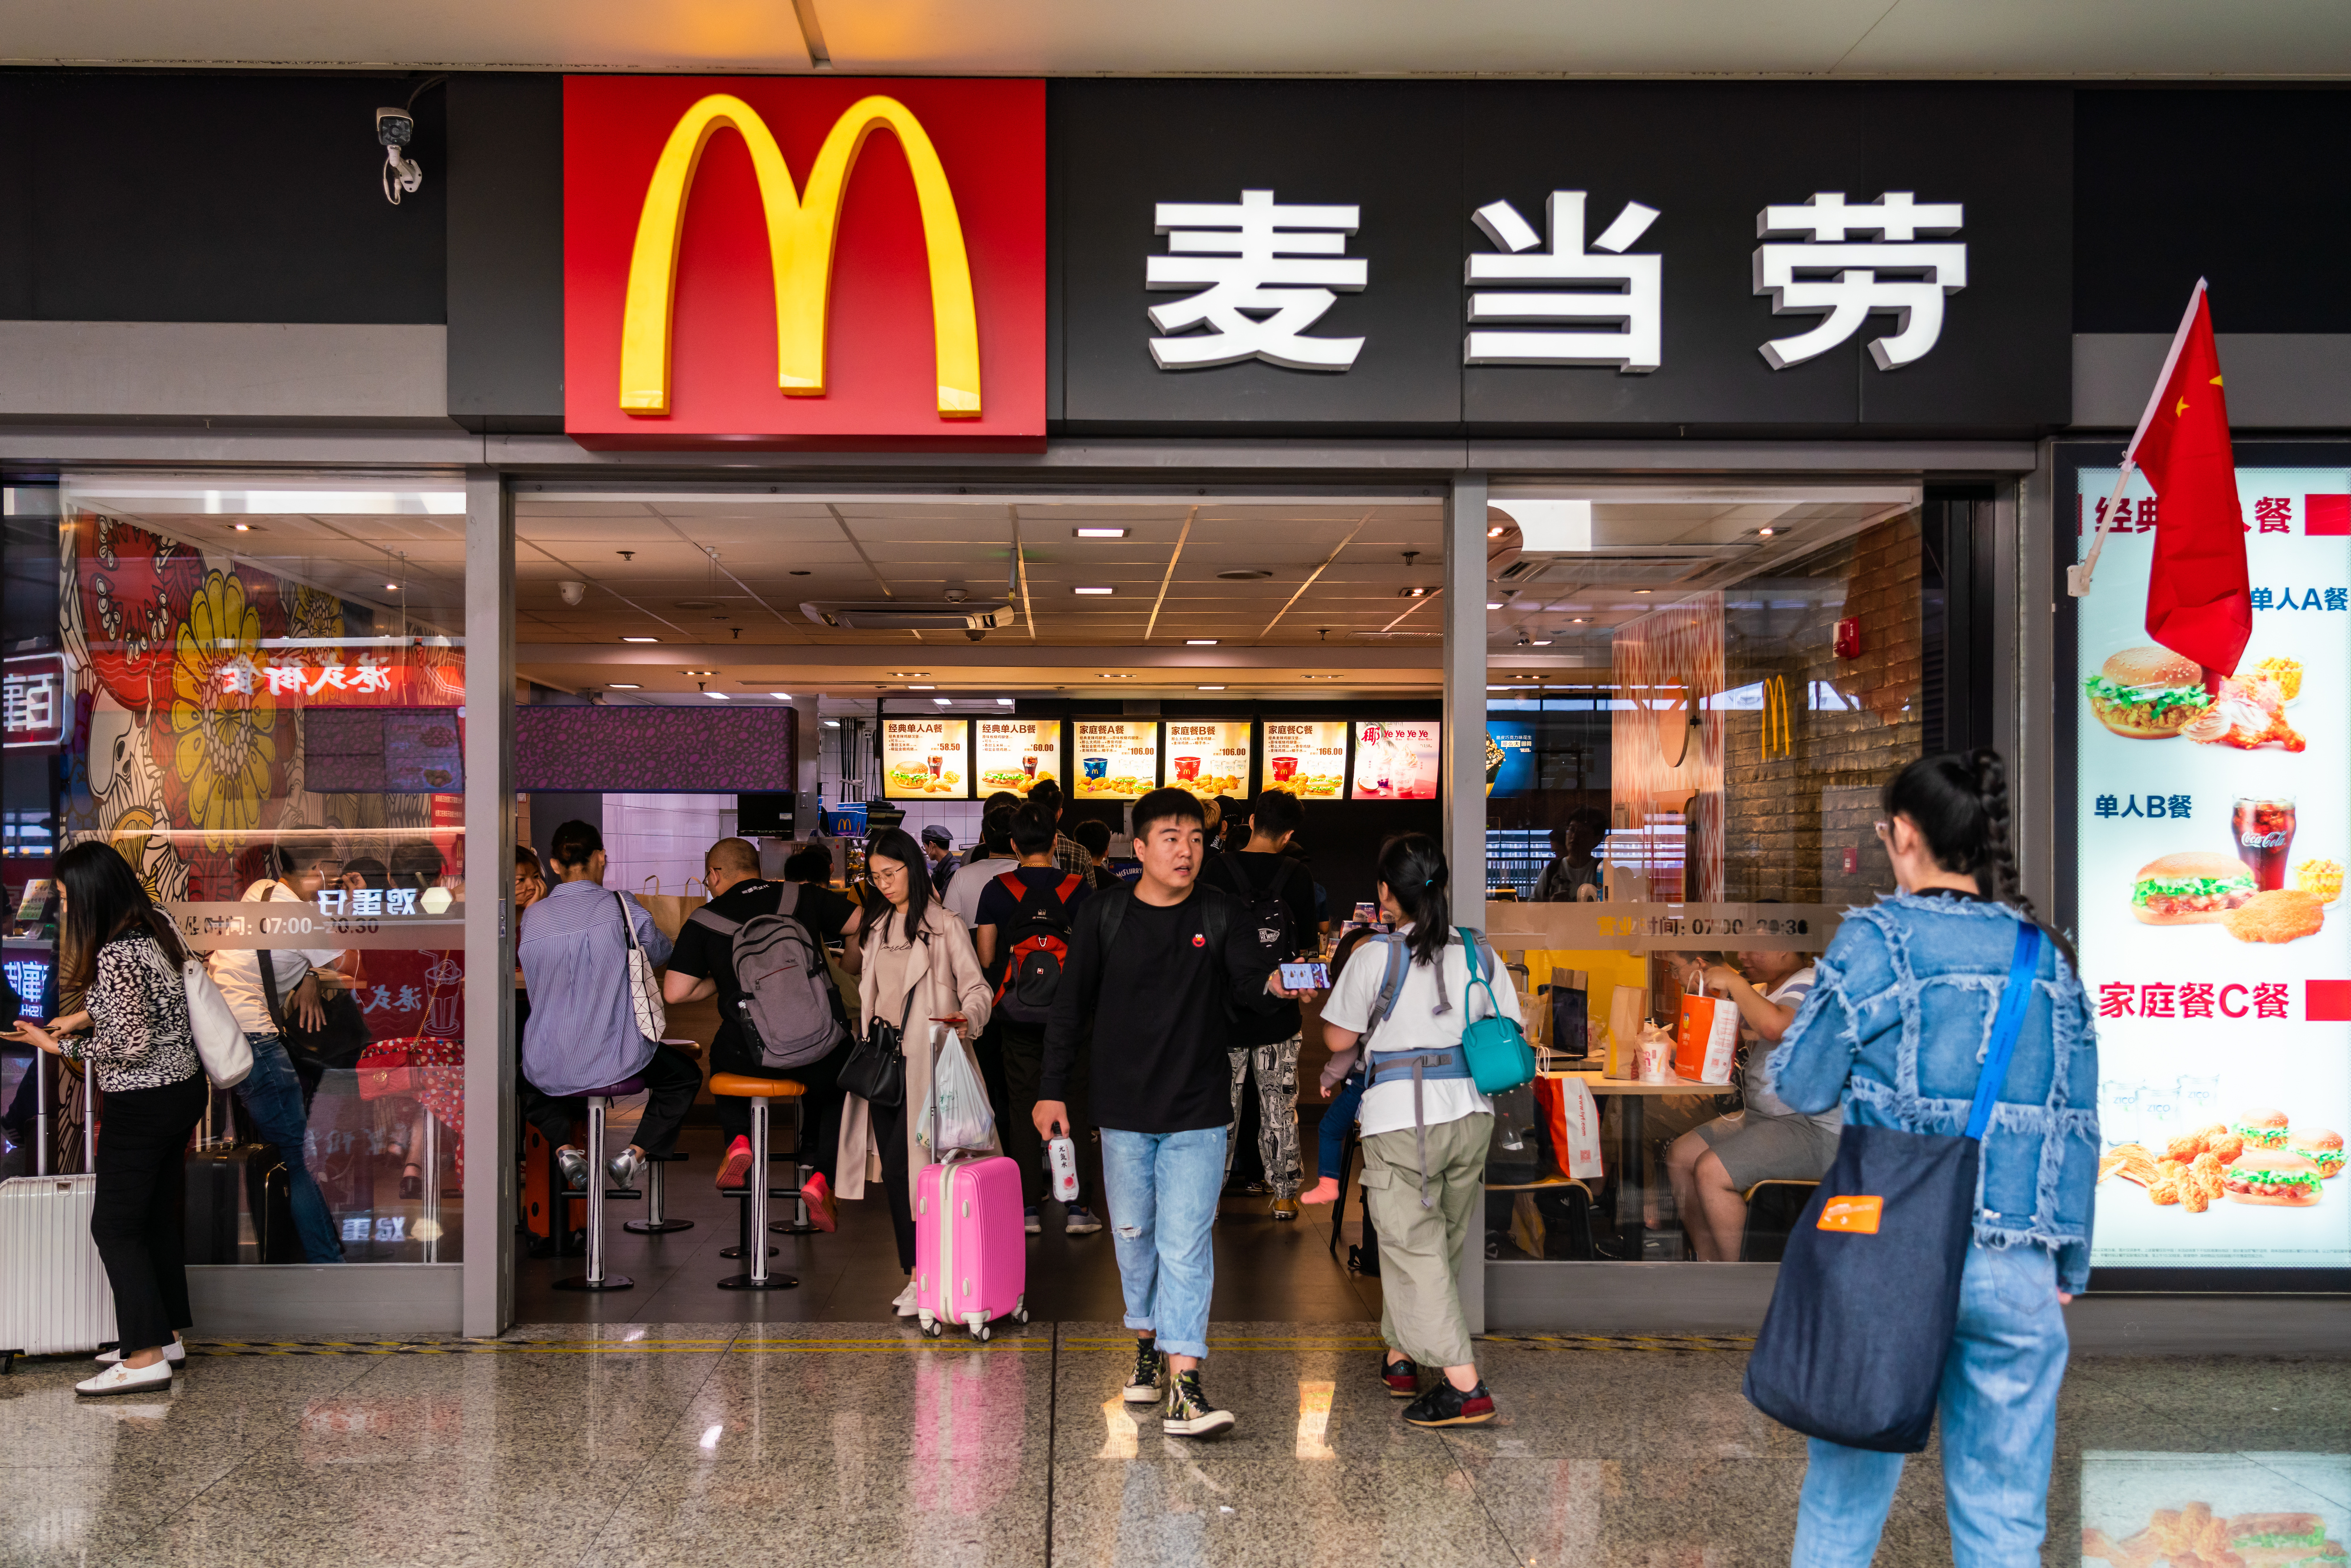 Customers walk in an out of a McDonald's in Shanghai.